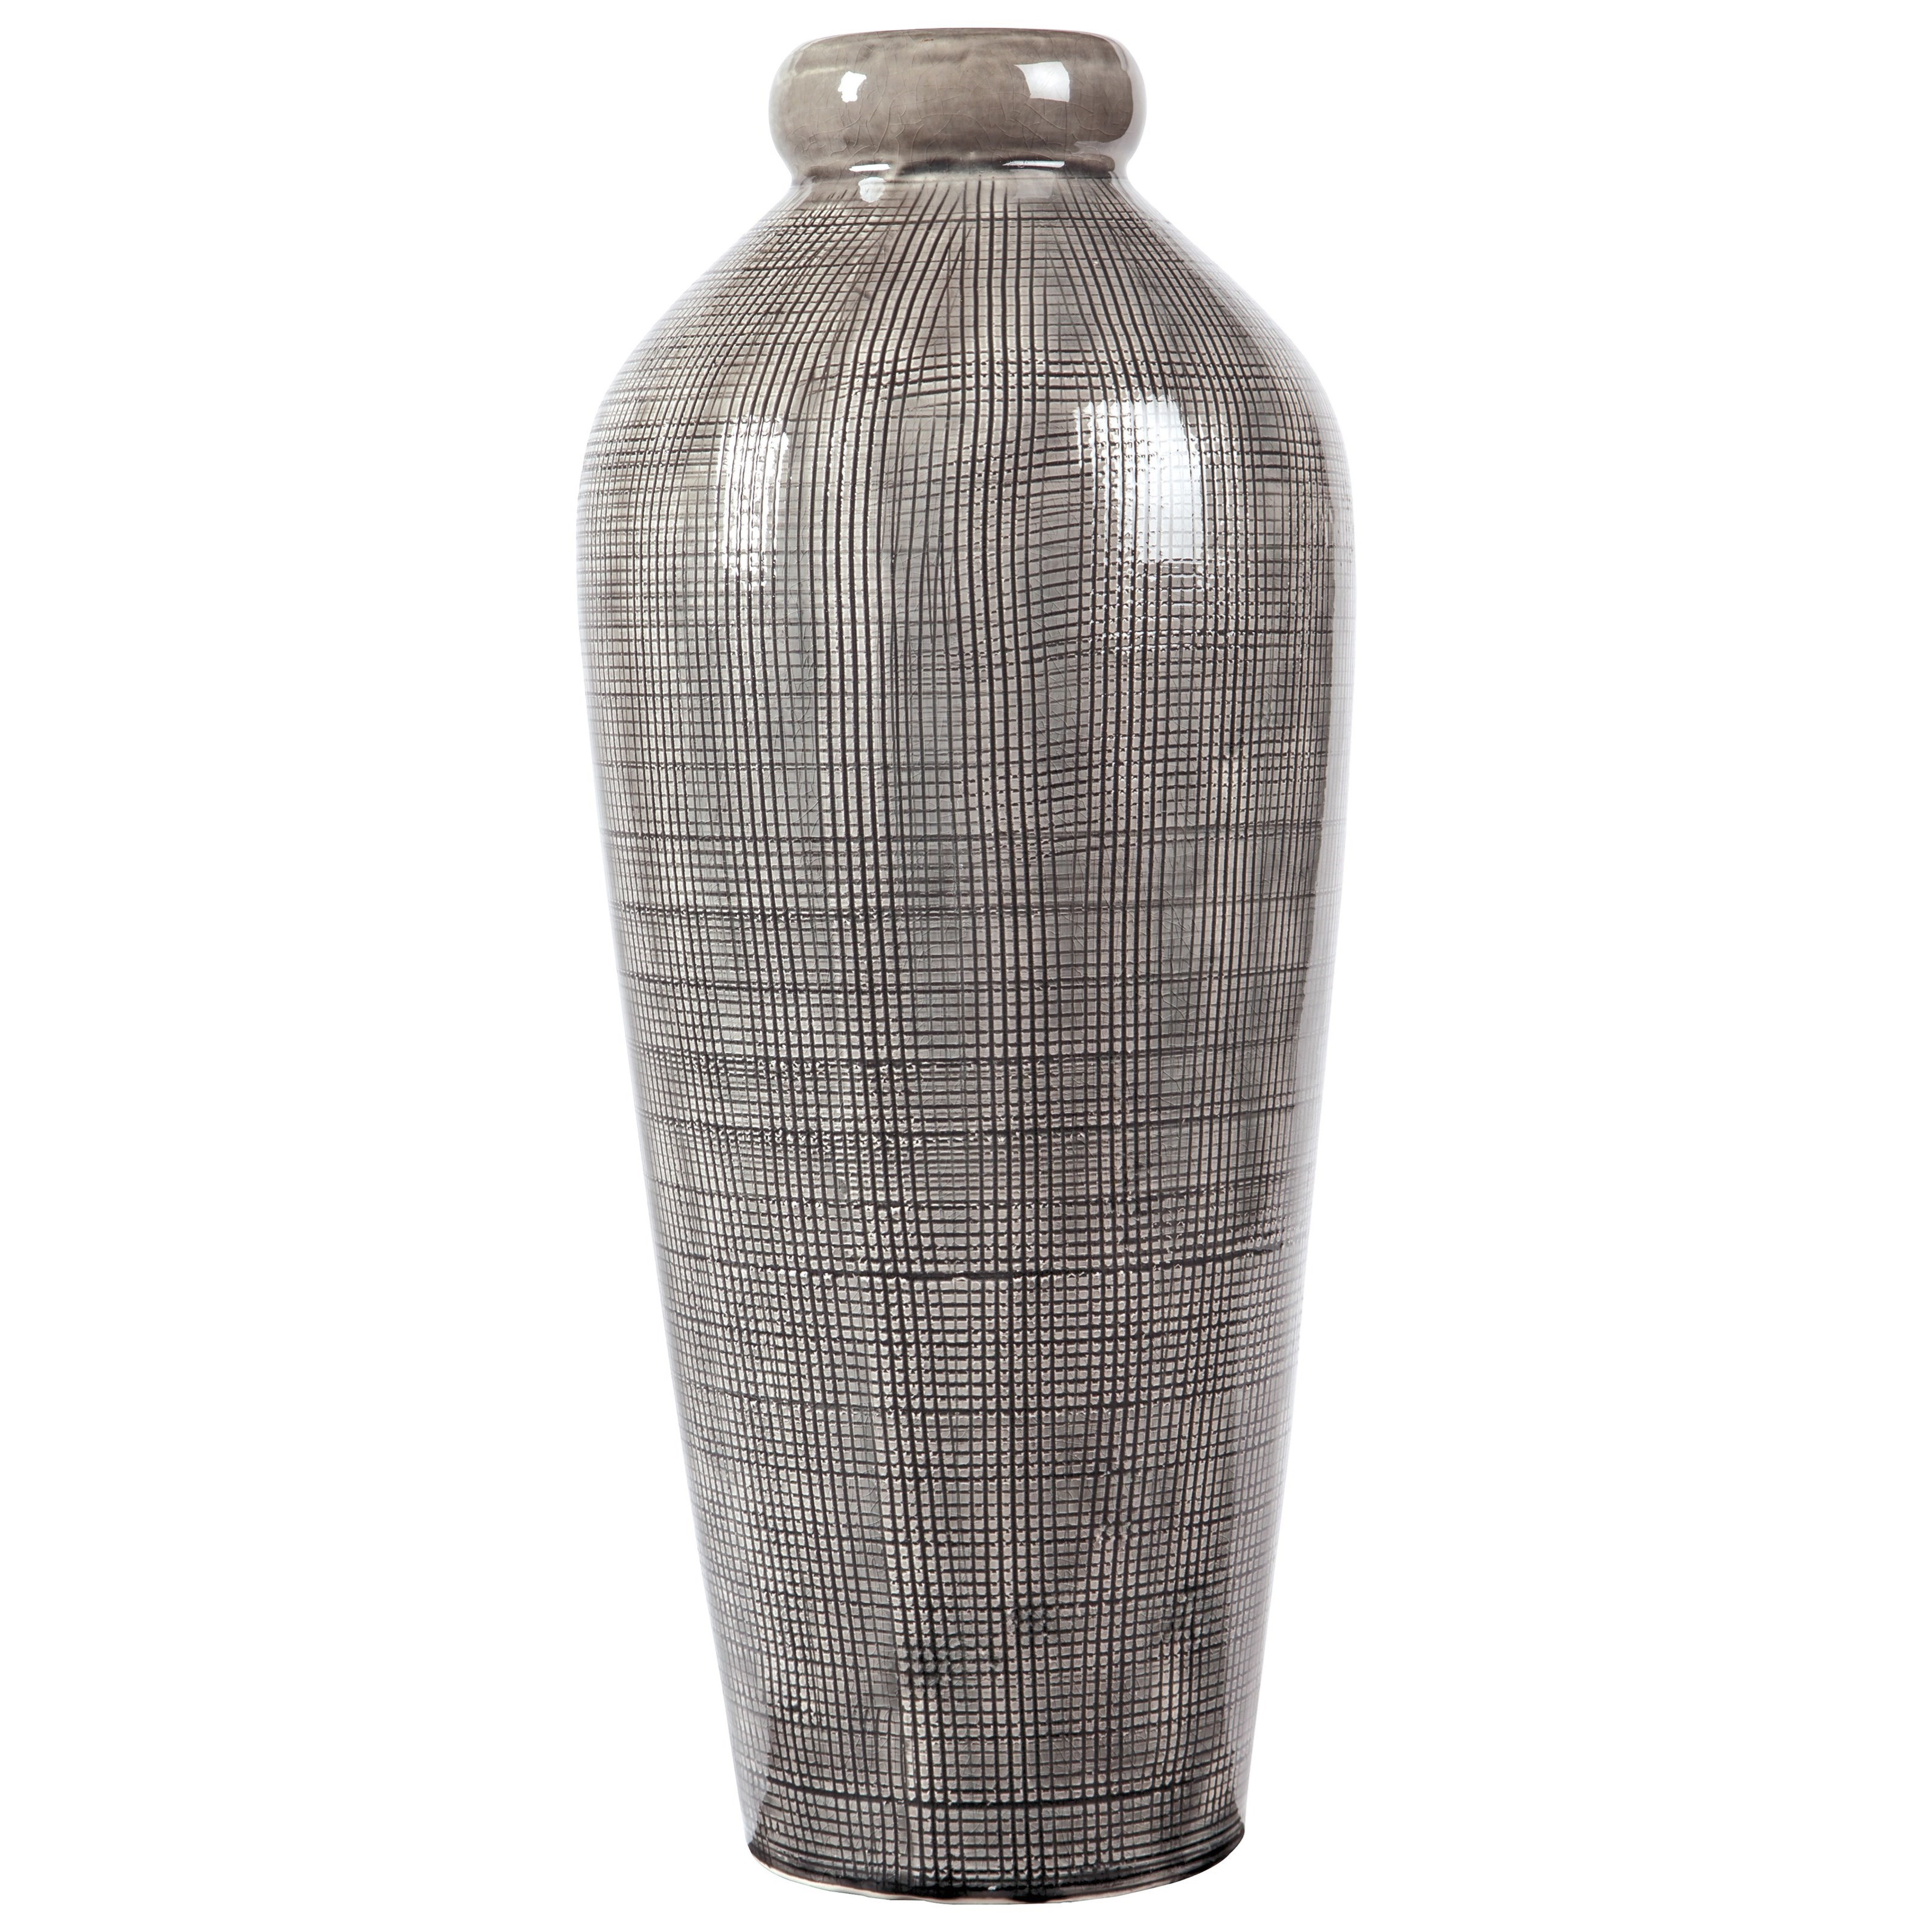 Signature Design by Ashley Accents Dilanne Gray Vase - Item Number: A2000279